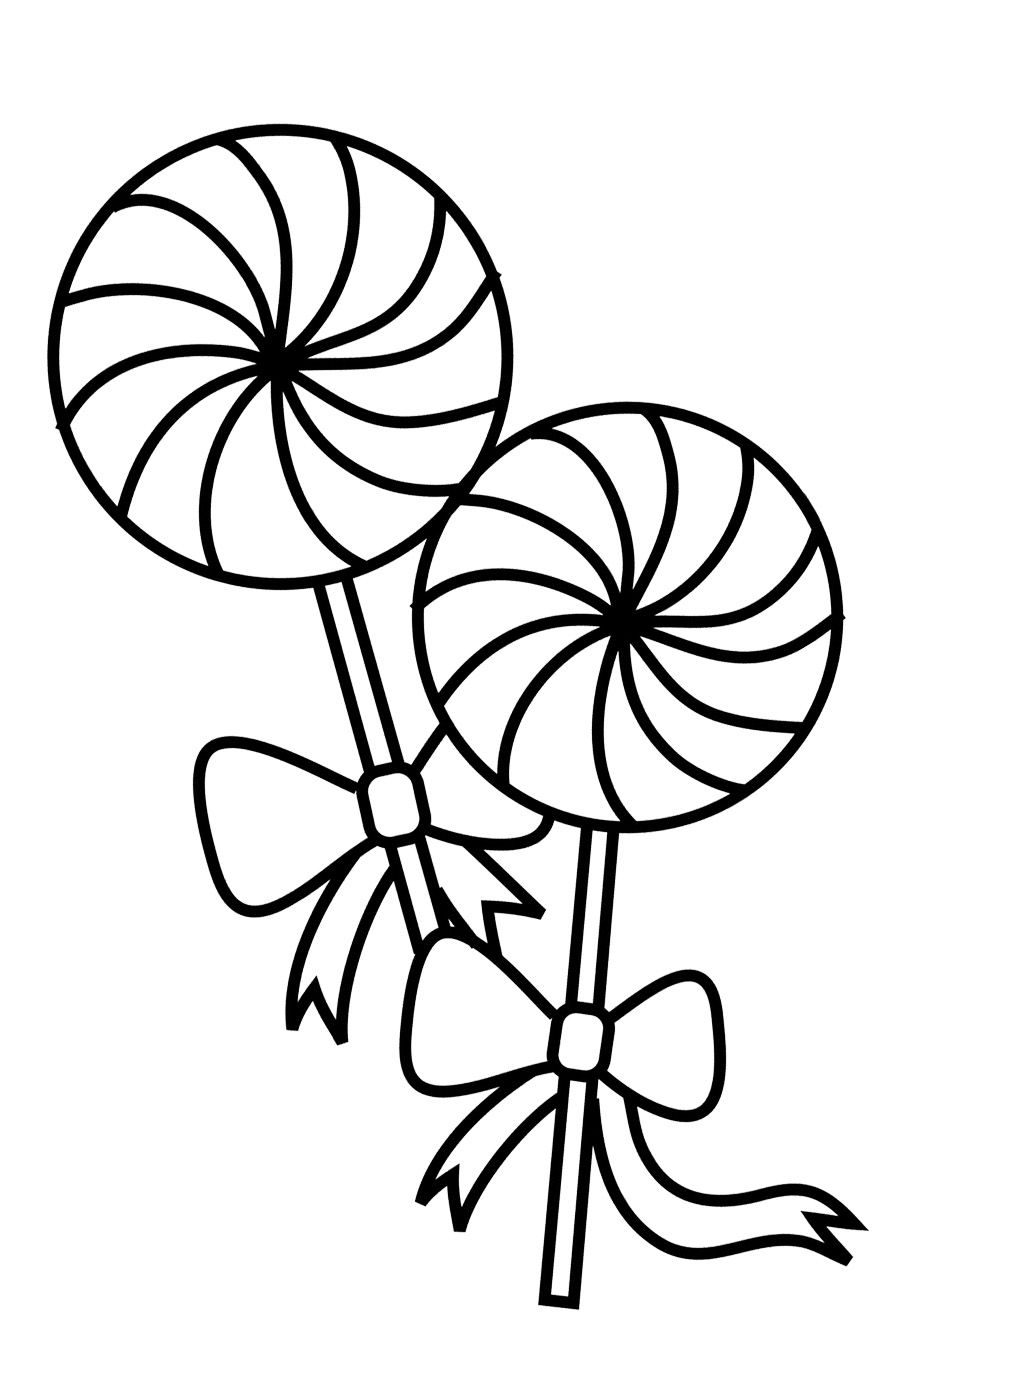 two lollipop coloring page - Lollipop Coloring Pages Printable